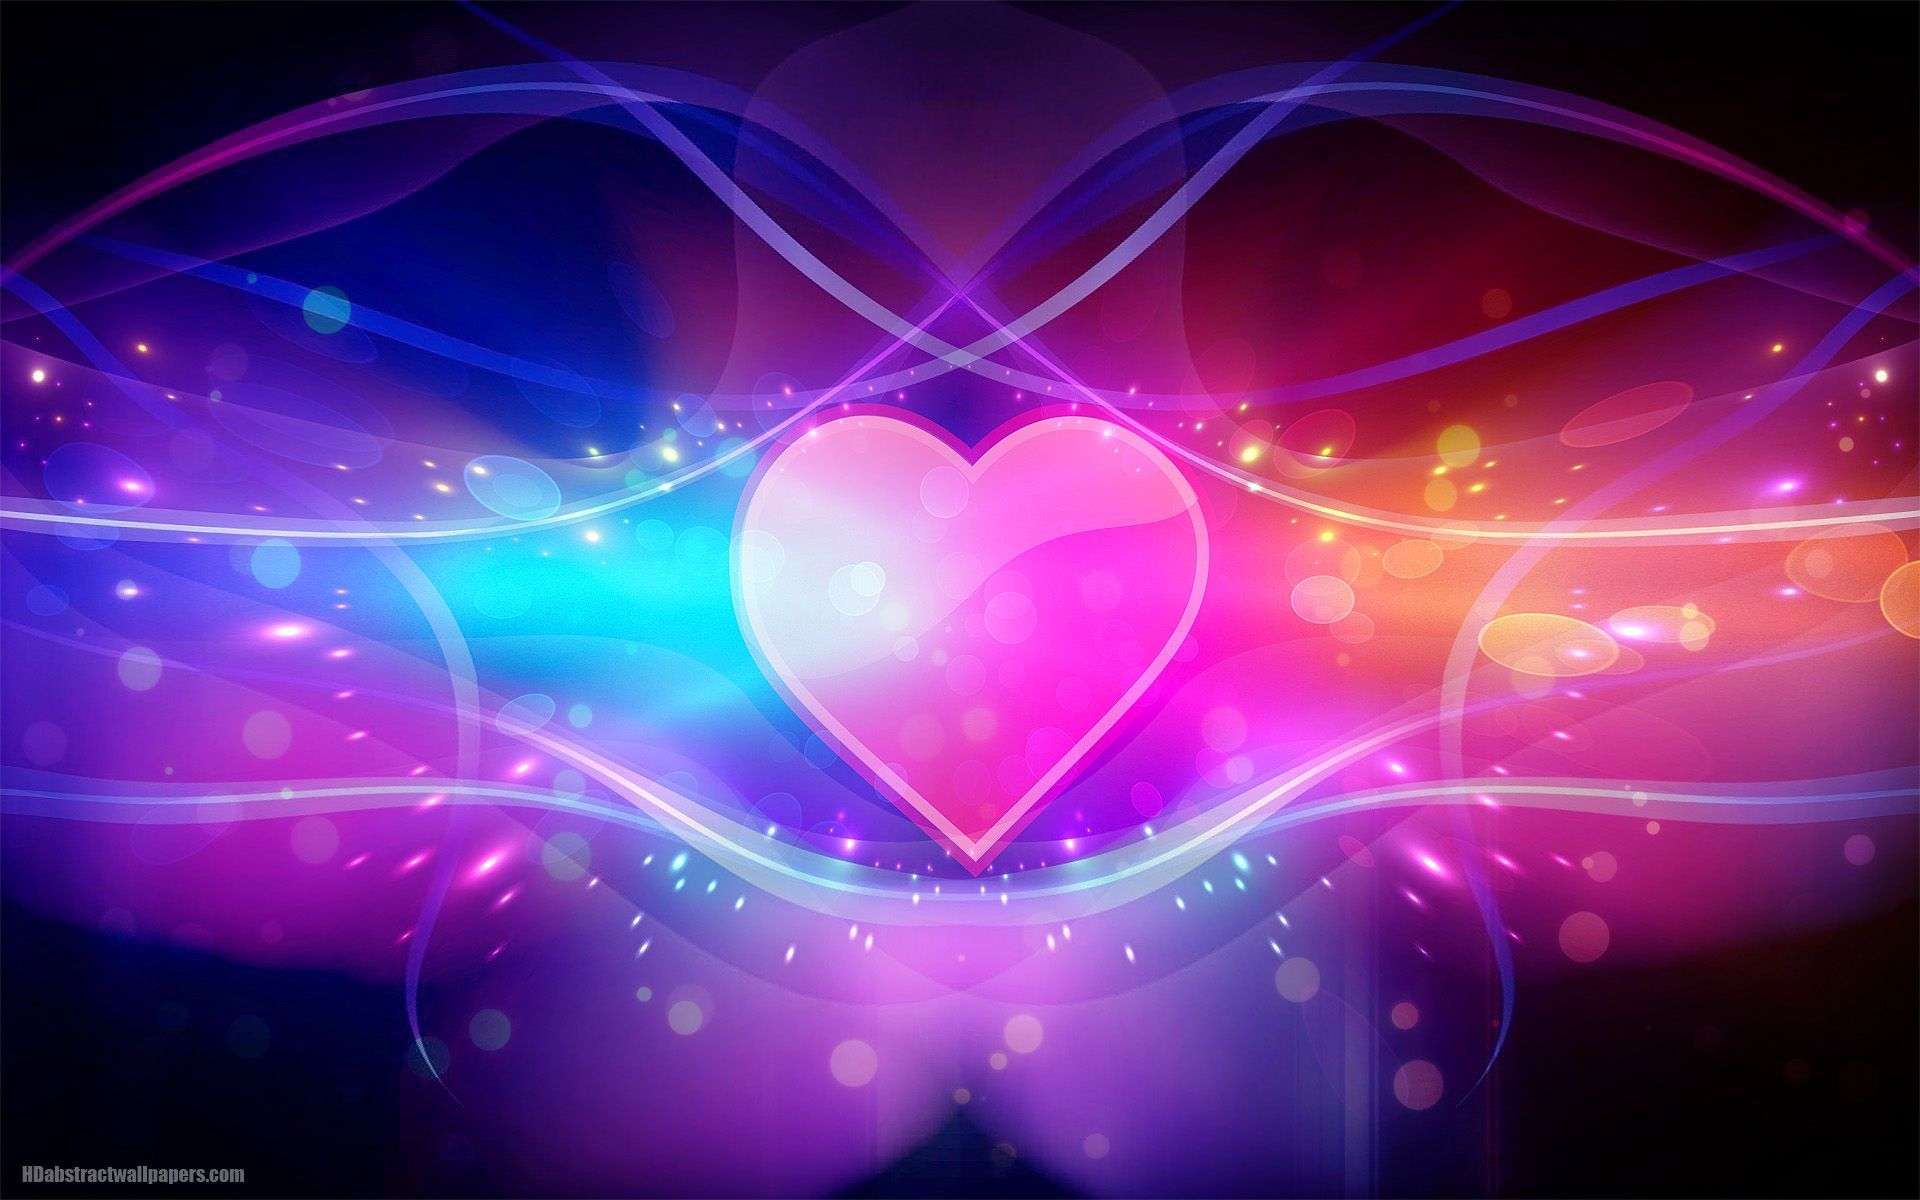 Abstract Heart Wallpapers Top Free Abstract Heart Backgrounds